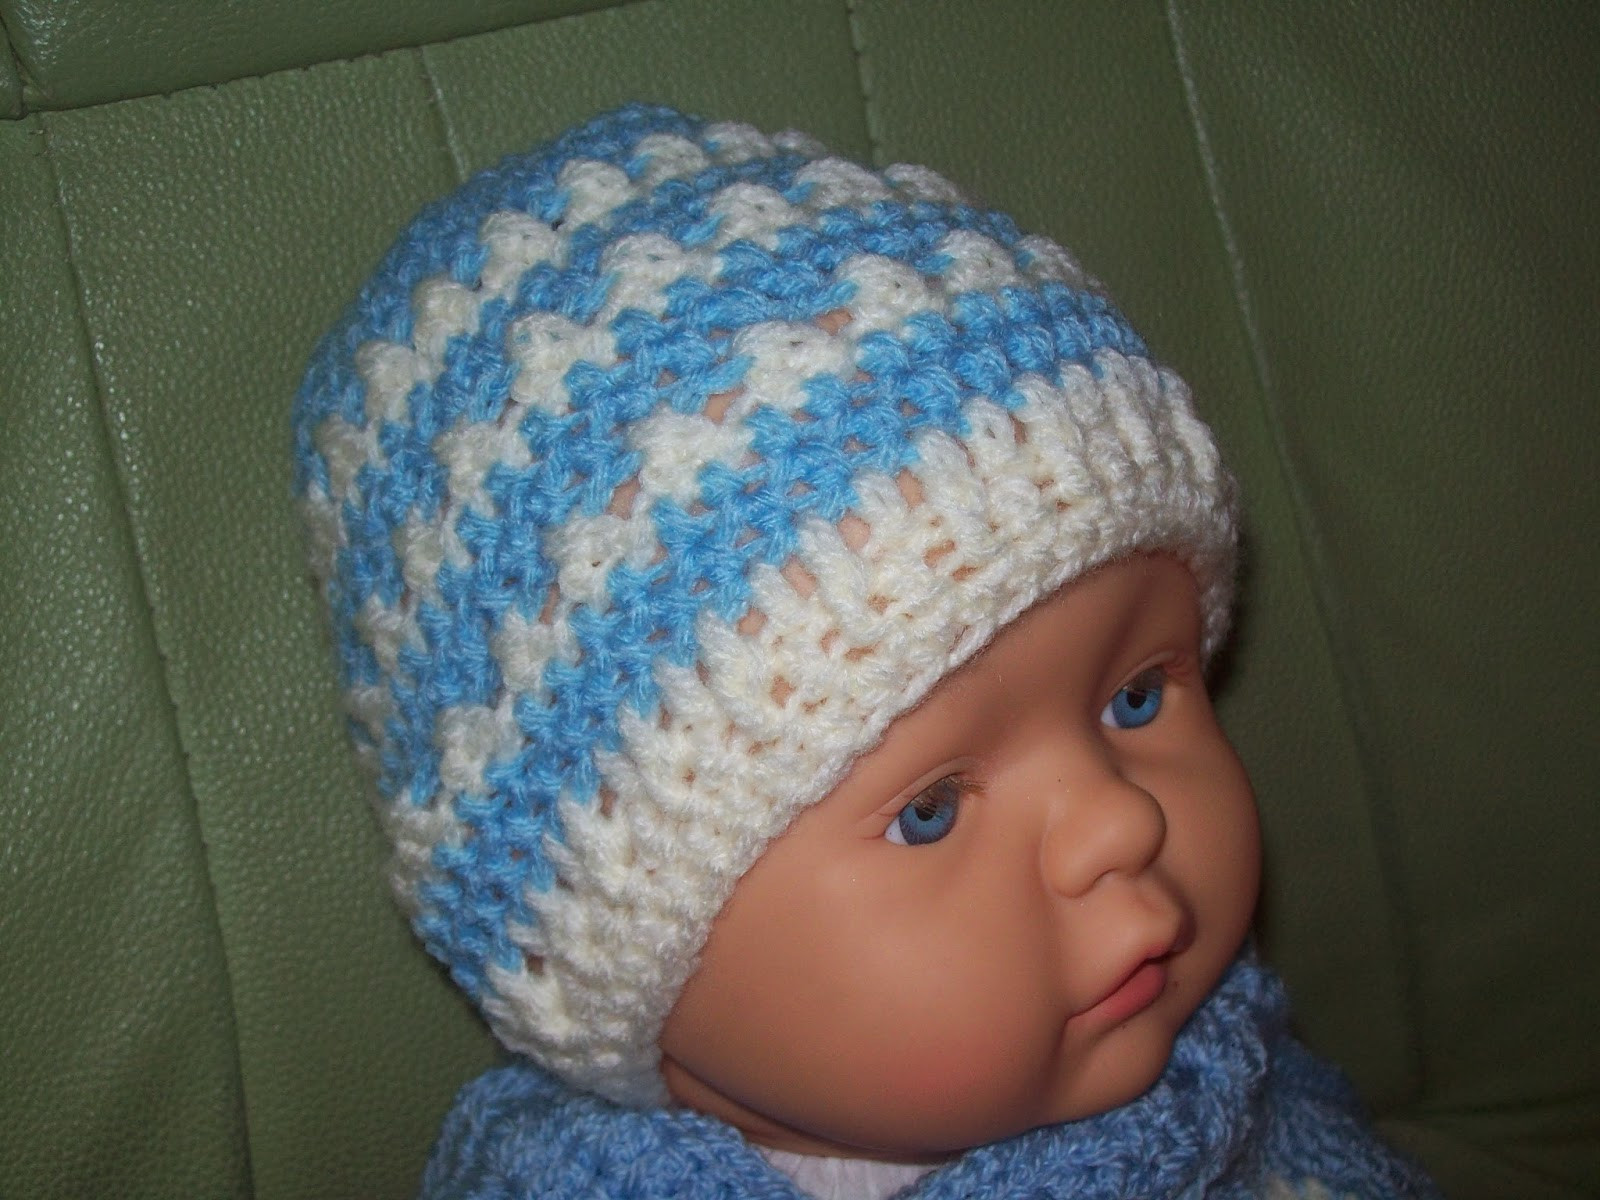 Free Crochet Baby Hats New Free Crochet Patterns by Cats Rockin Crochet Of Attractive 48 Photos Free Crochet Baby Hats